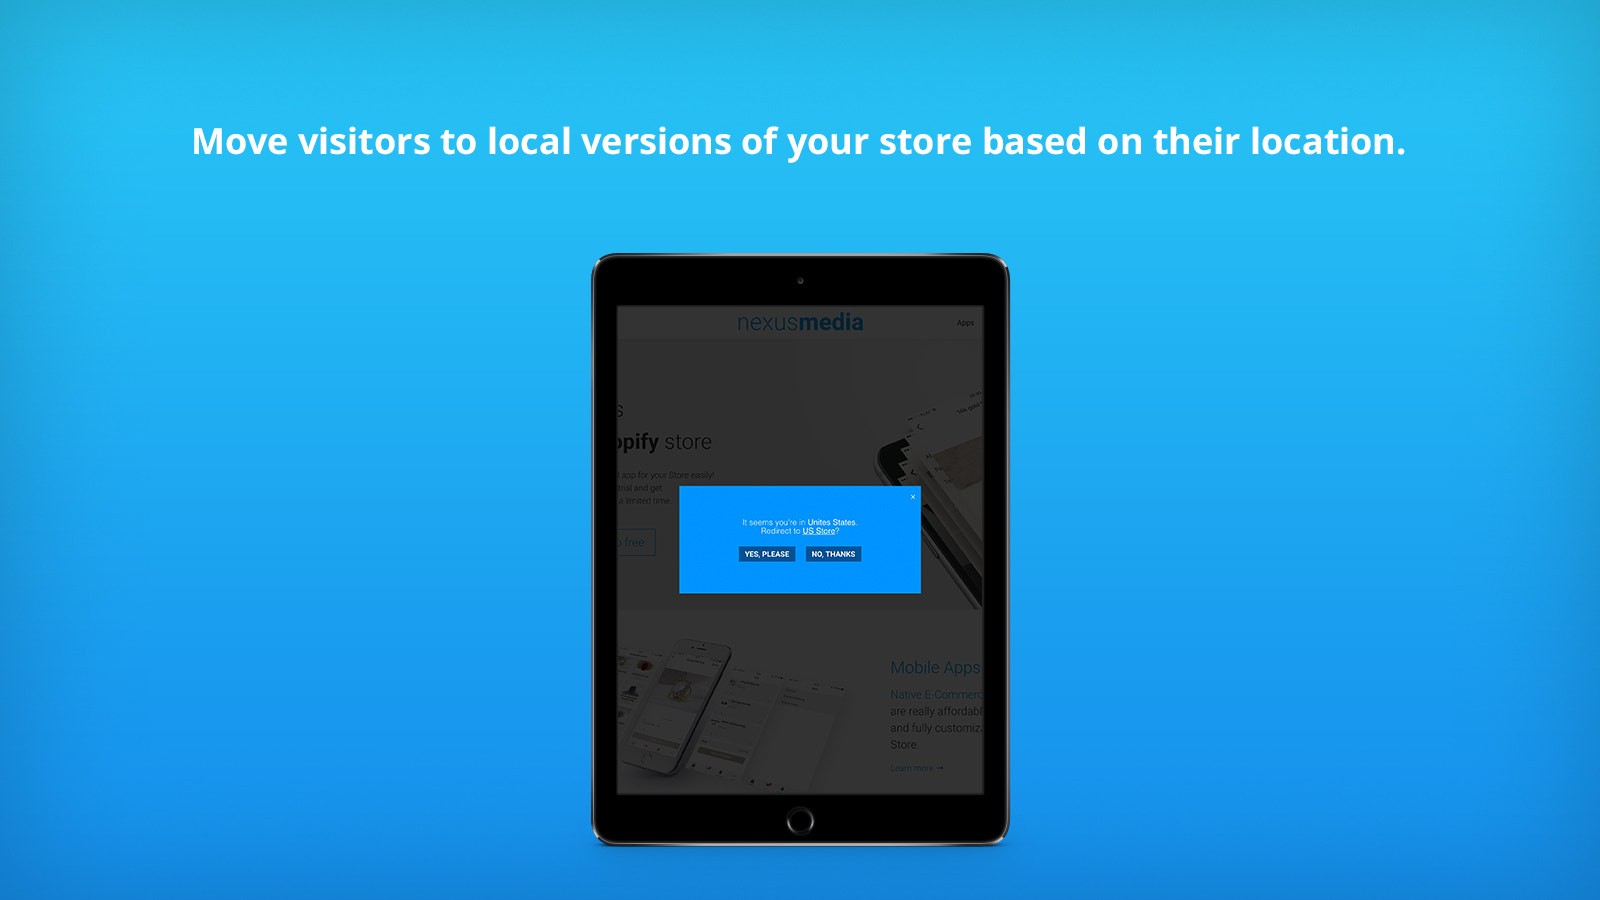 Redirect visitors to local versions based on their location